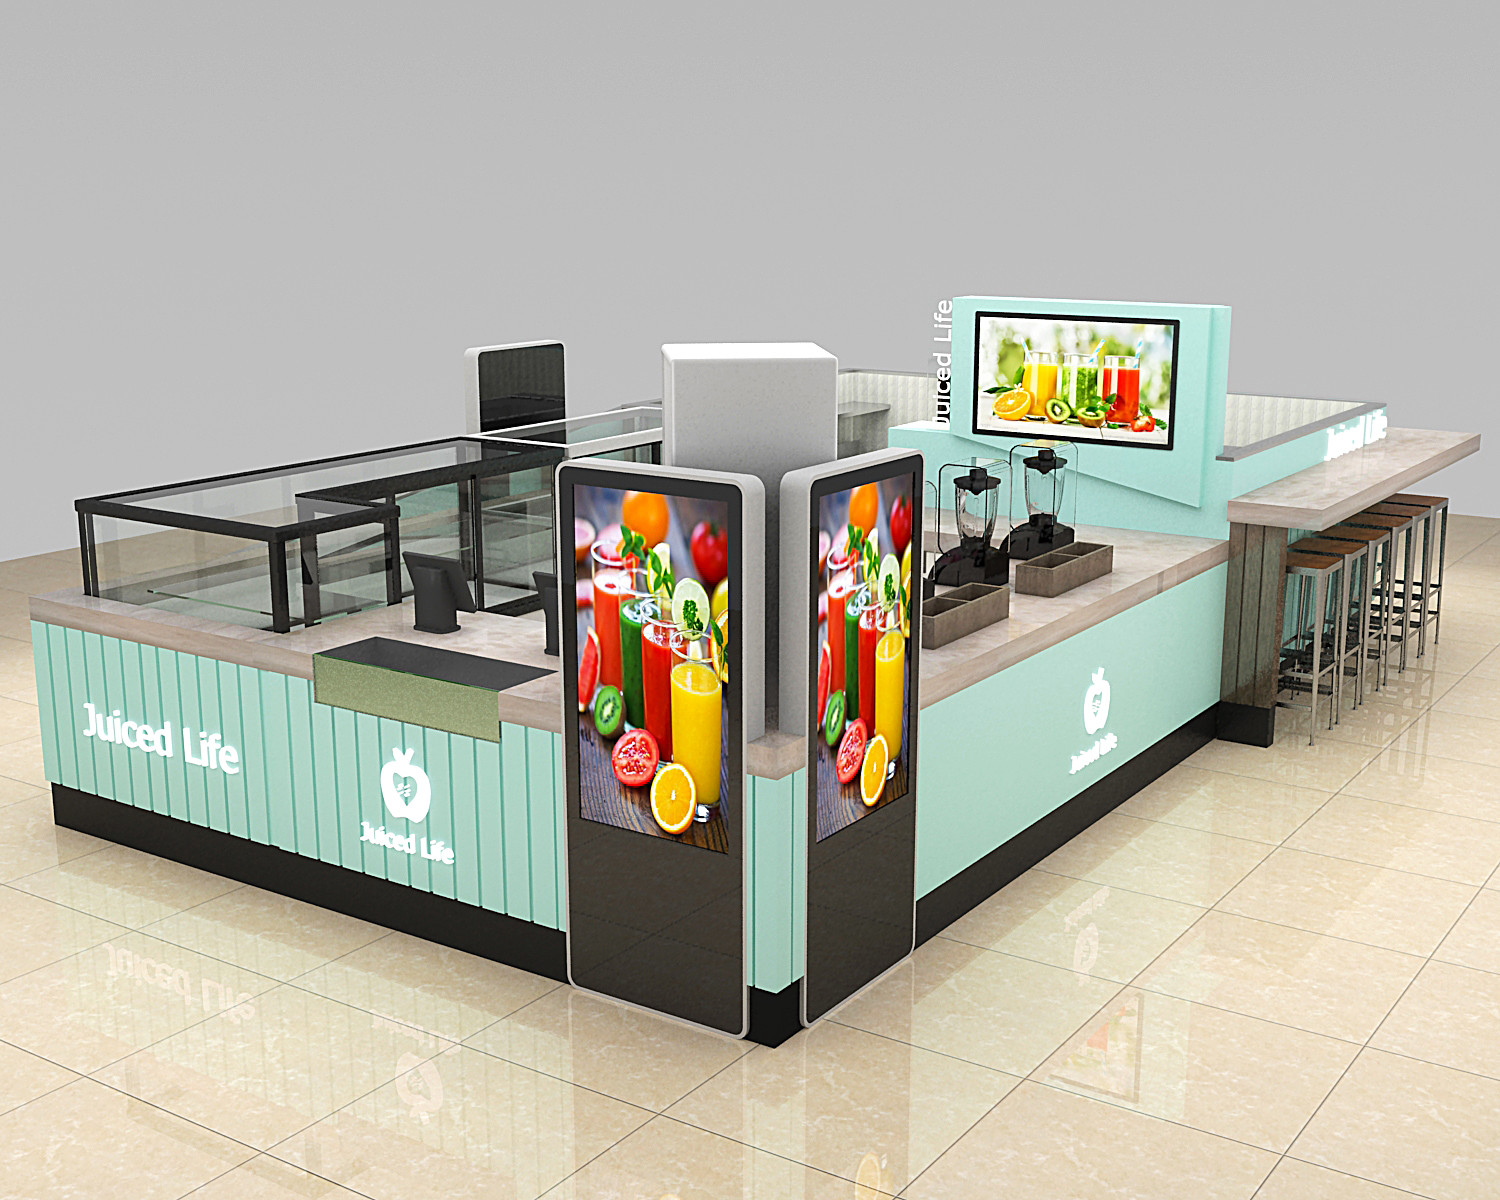 Around Before Deciding Exactly Where To Locate Your Kiosk If Necessary Ly For Business Loans At Bank Or Credit Union And Here Are